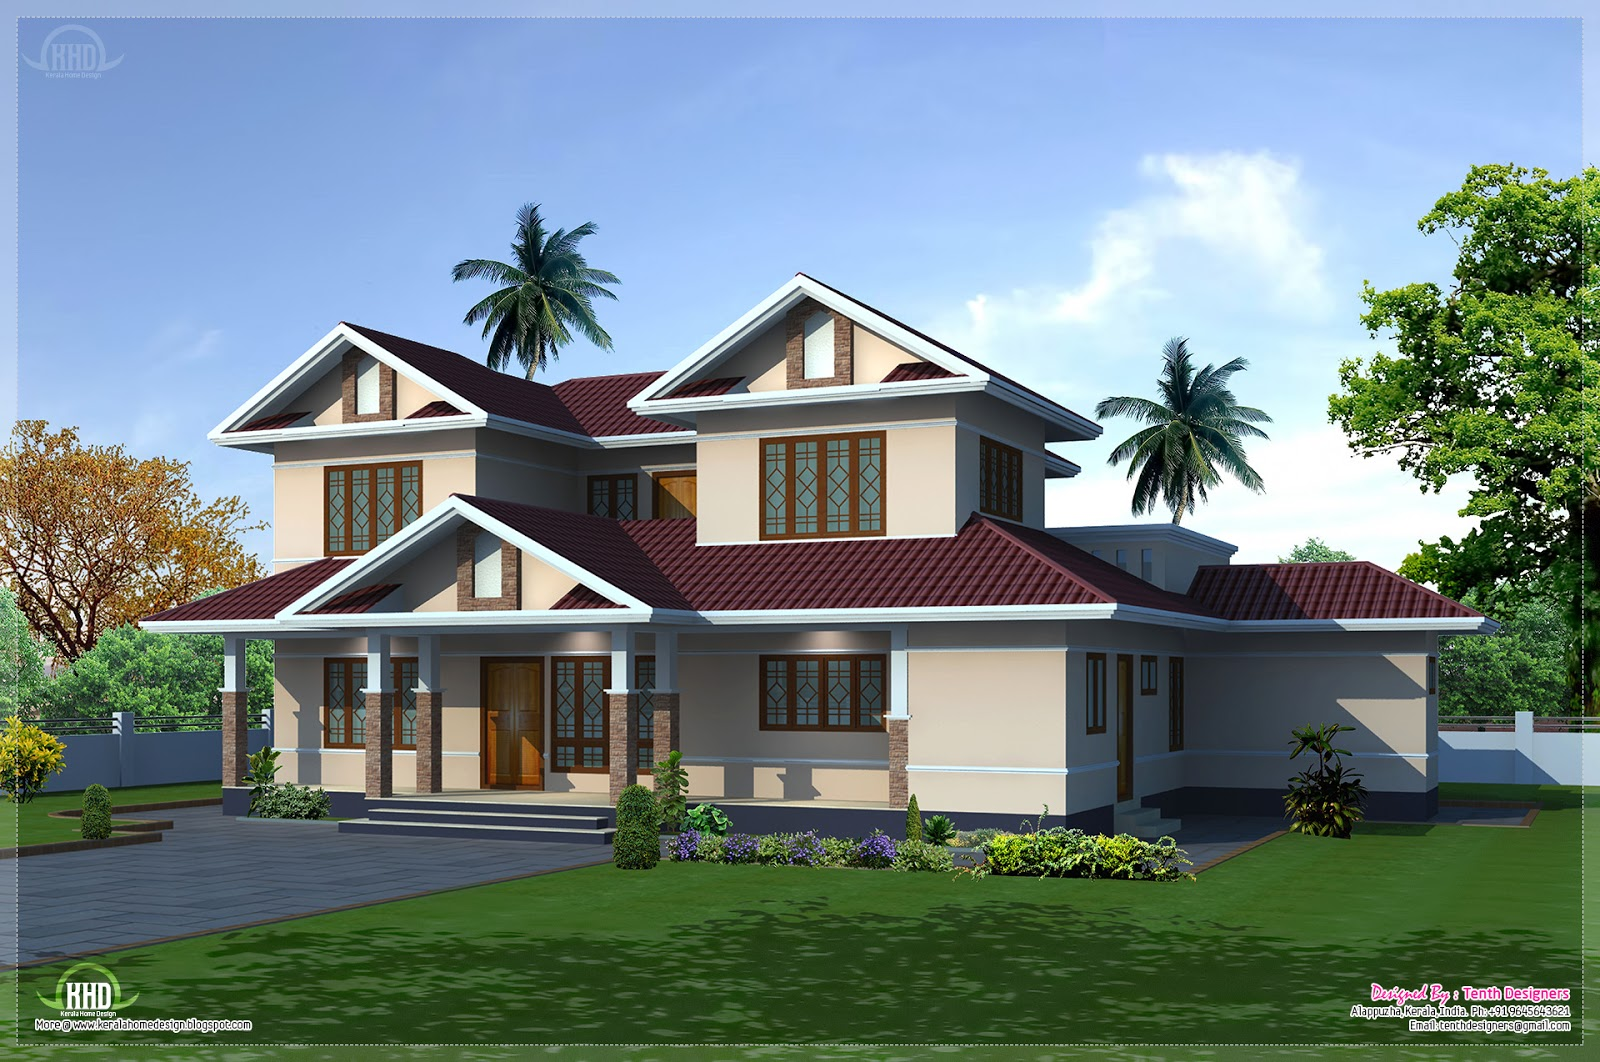 Exterior traditional house plans exterior house designs for Traditional home design ideas